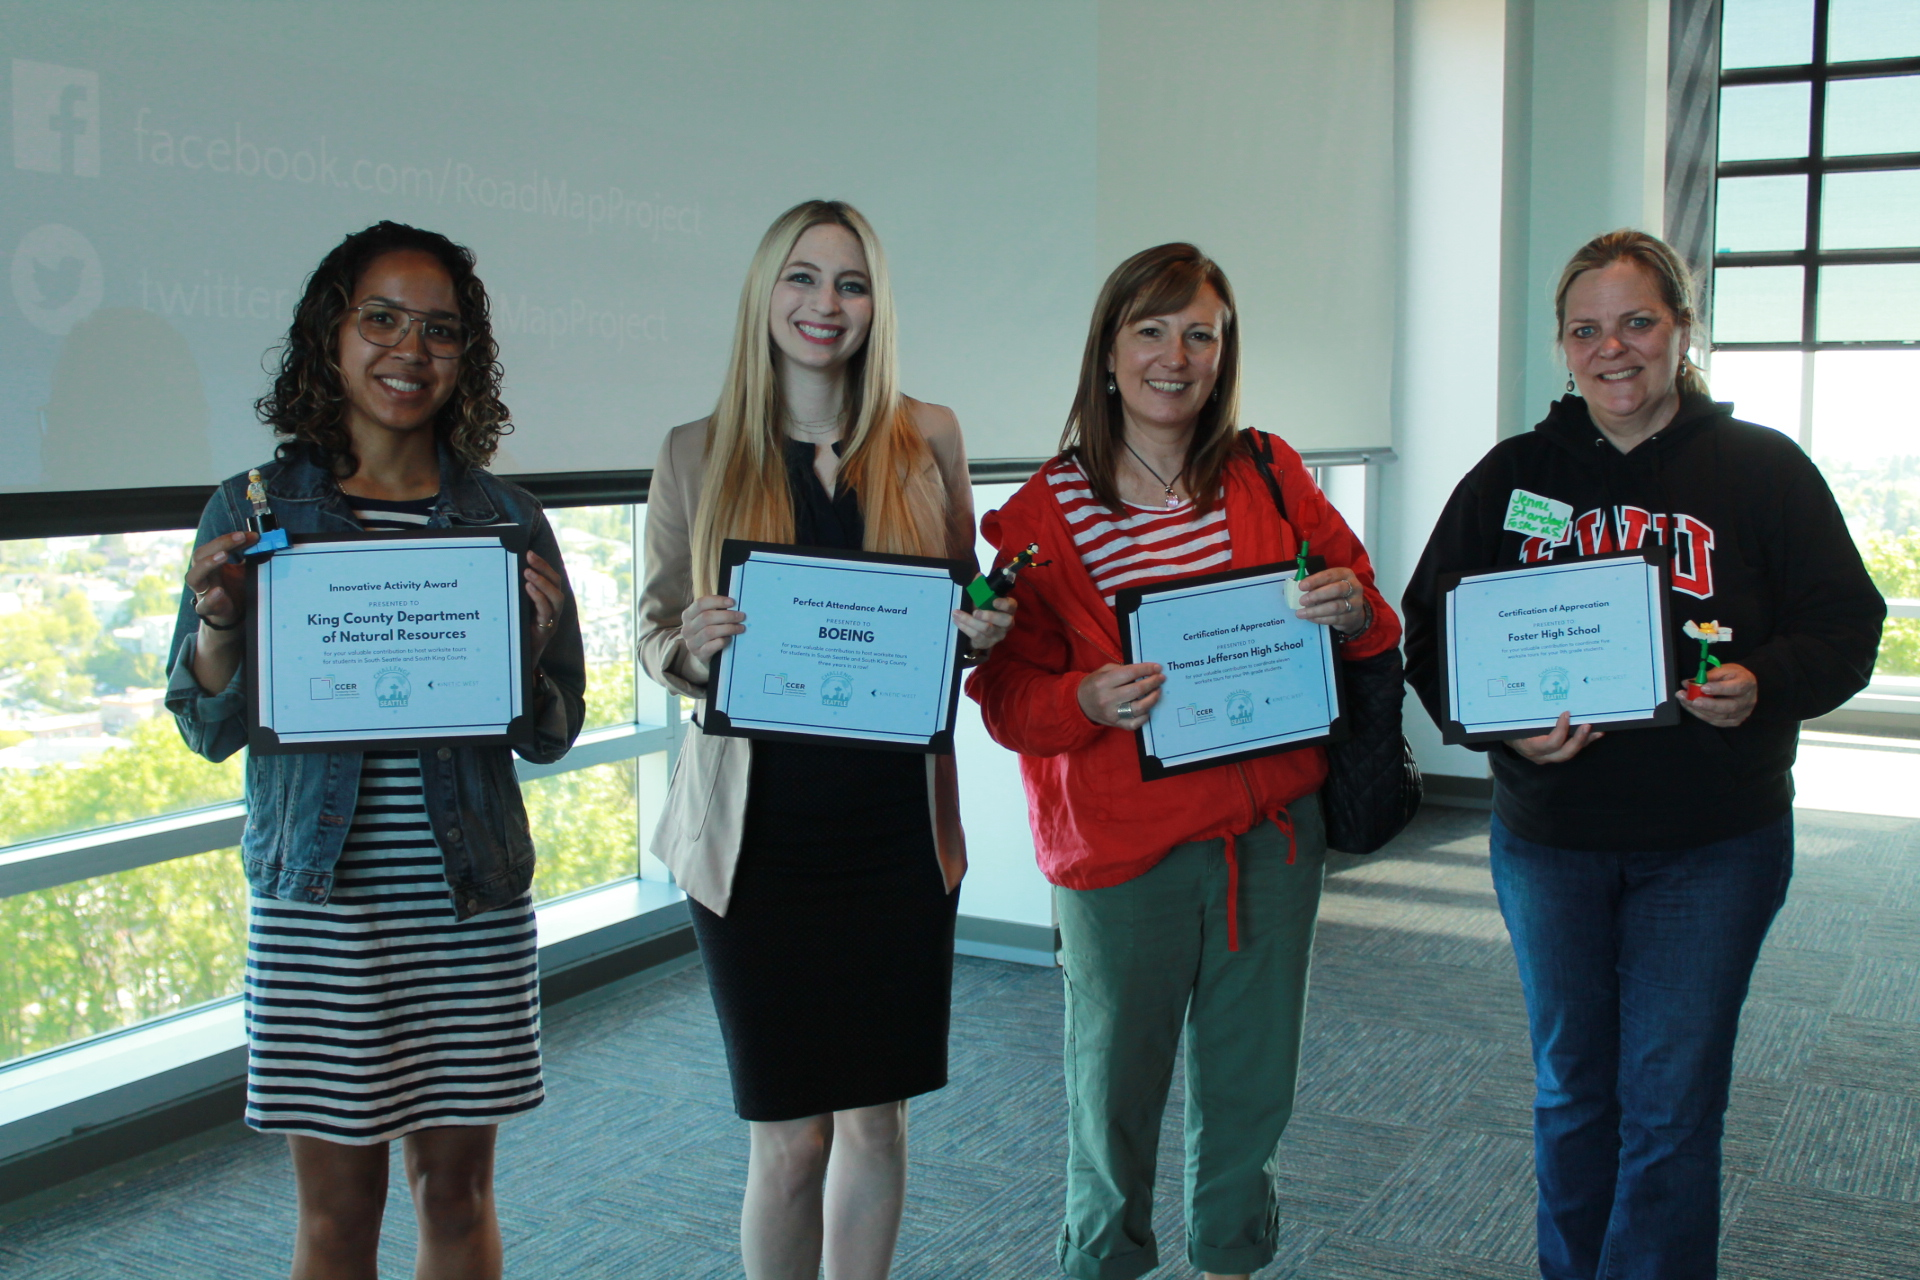 Two 2018-2019 worksite tour awardees from King County Dept. of Natural Resources and Boeing, with two school coordinators from Thomas Jefferson High School and Foster High School.